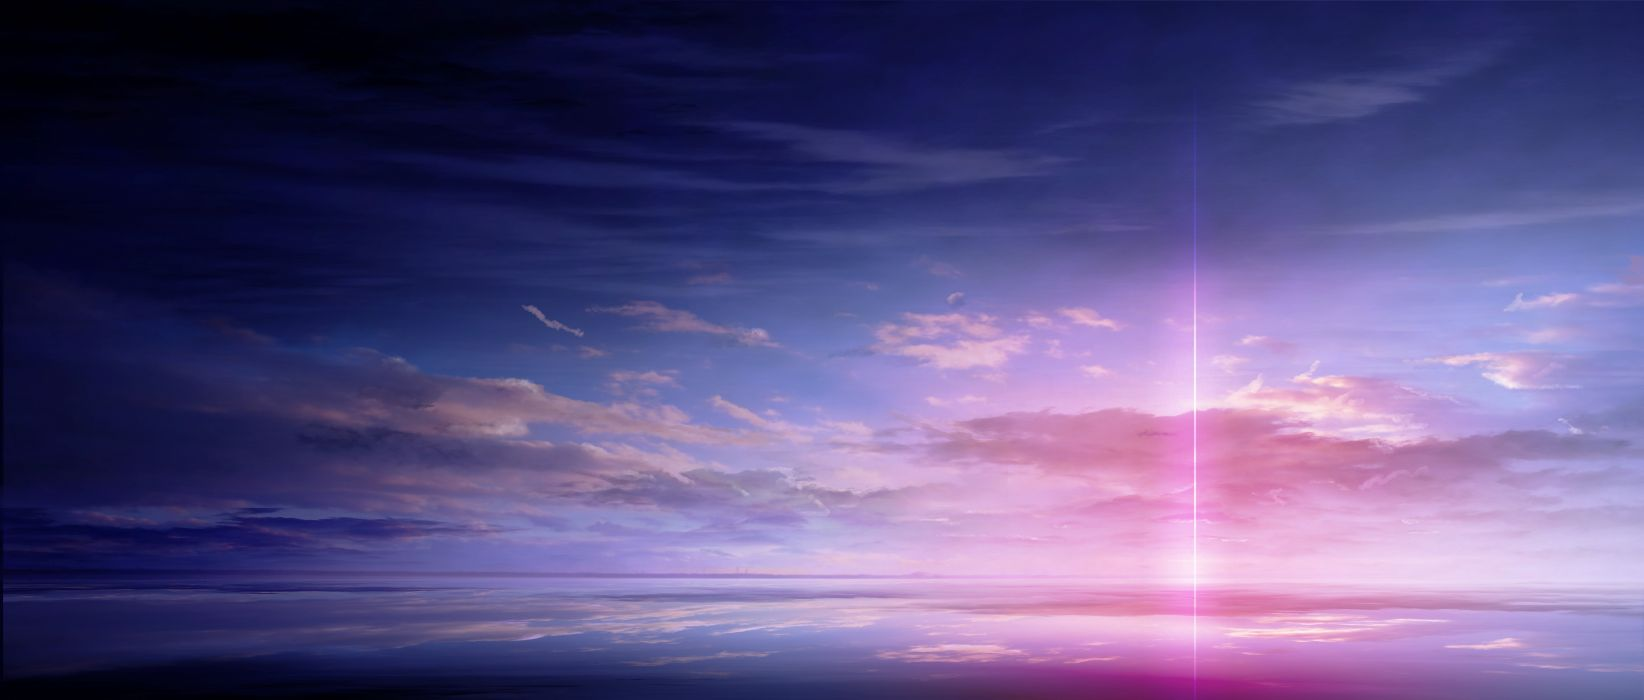 anime scan landscape sky cloud beautiful light color wallpaper